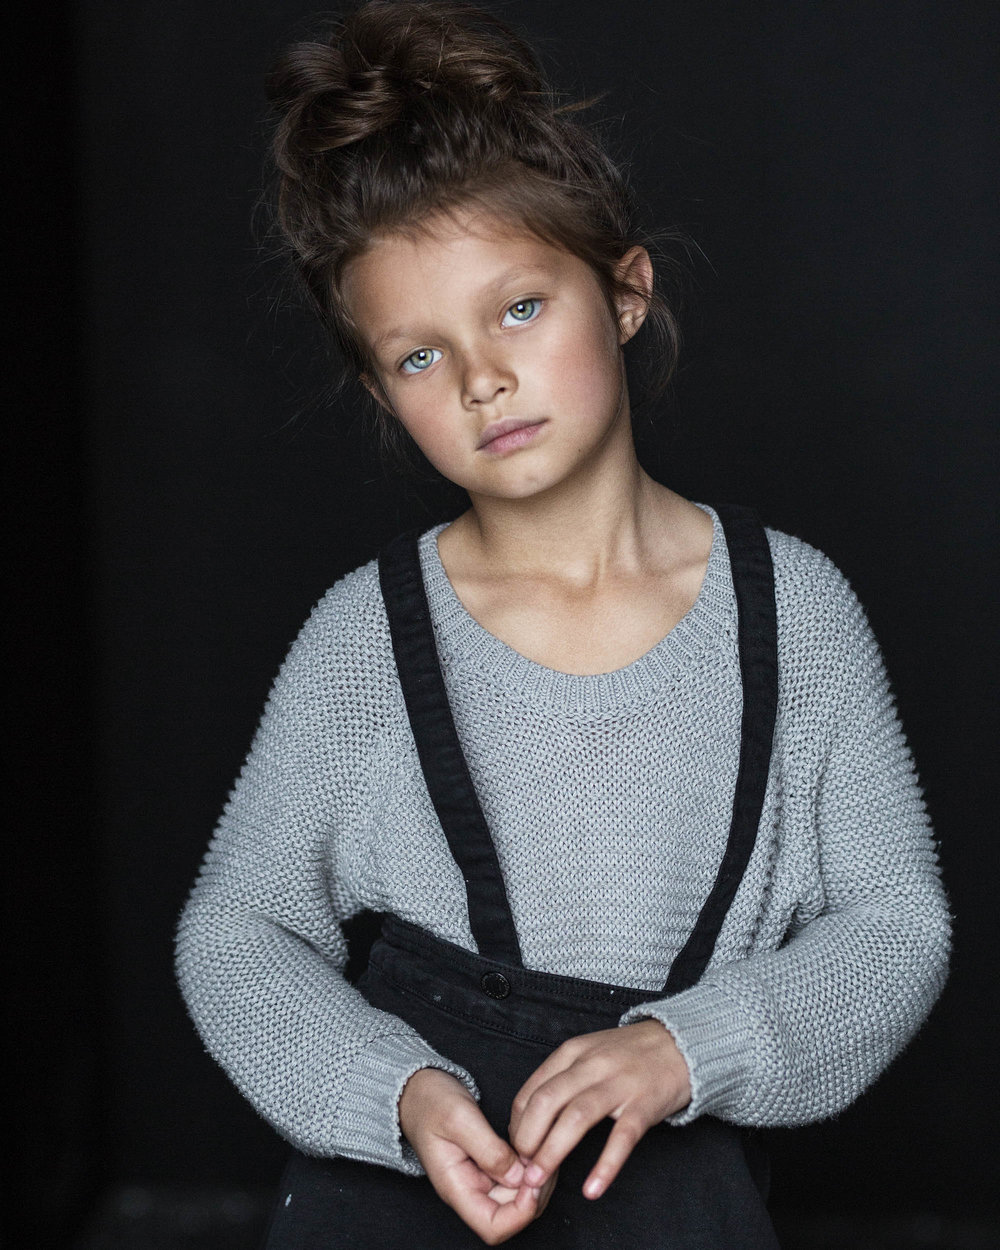 Photography of Zoe by youth portrait photographer Nick Walters at Lumi Studio in Melbourne.jpg